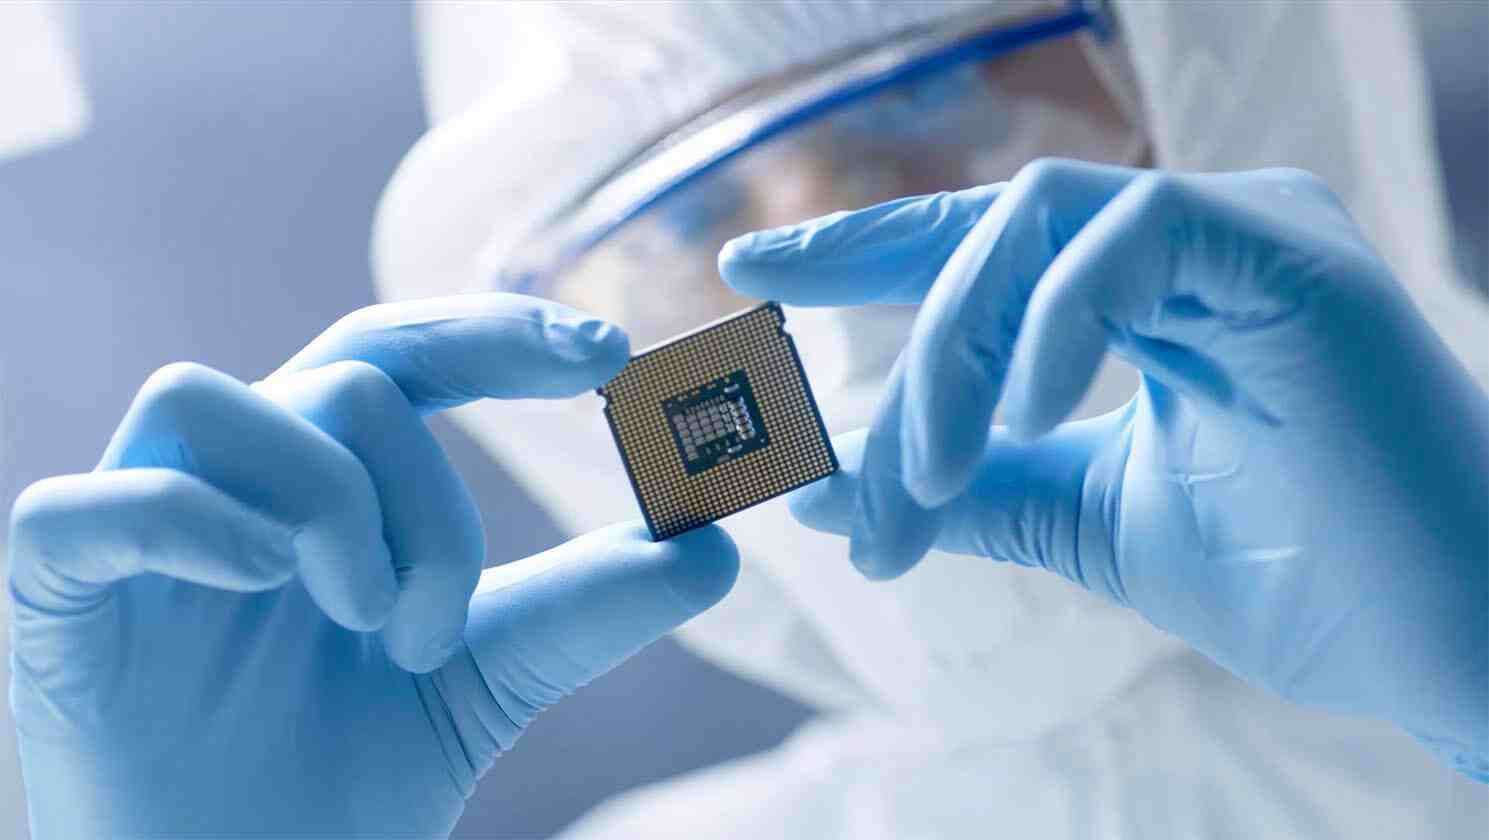 ASIC Semiconductor Design Services And Solutions